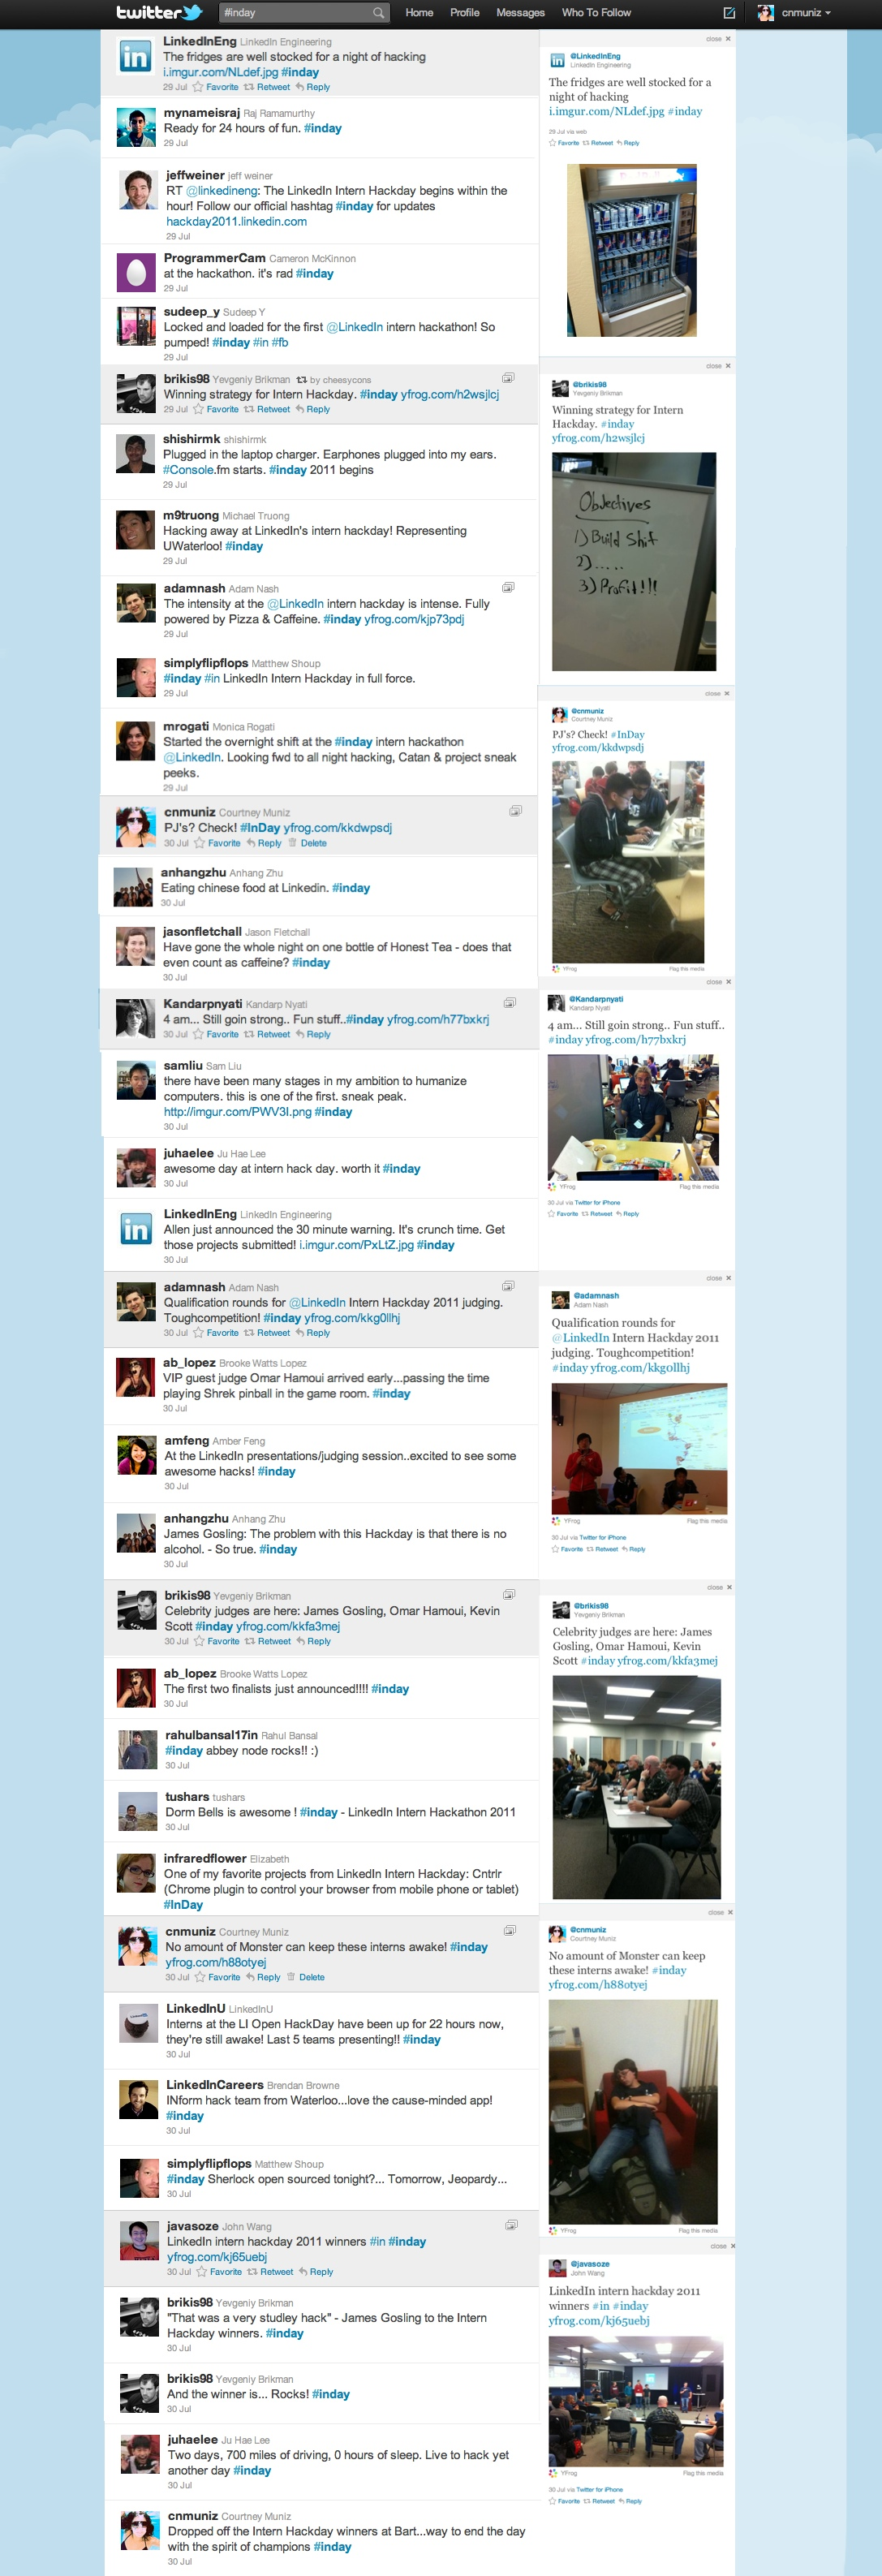 linkedin intern hackday tweetstream